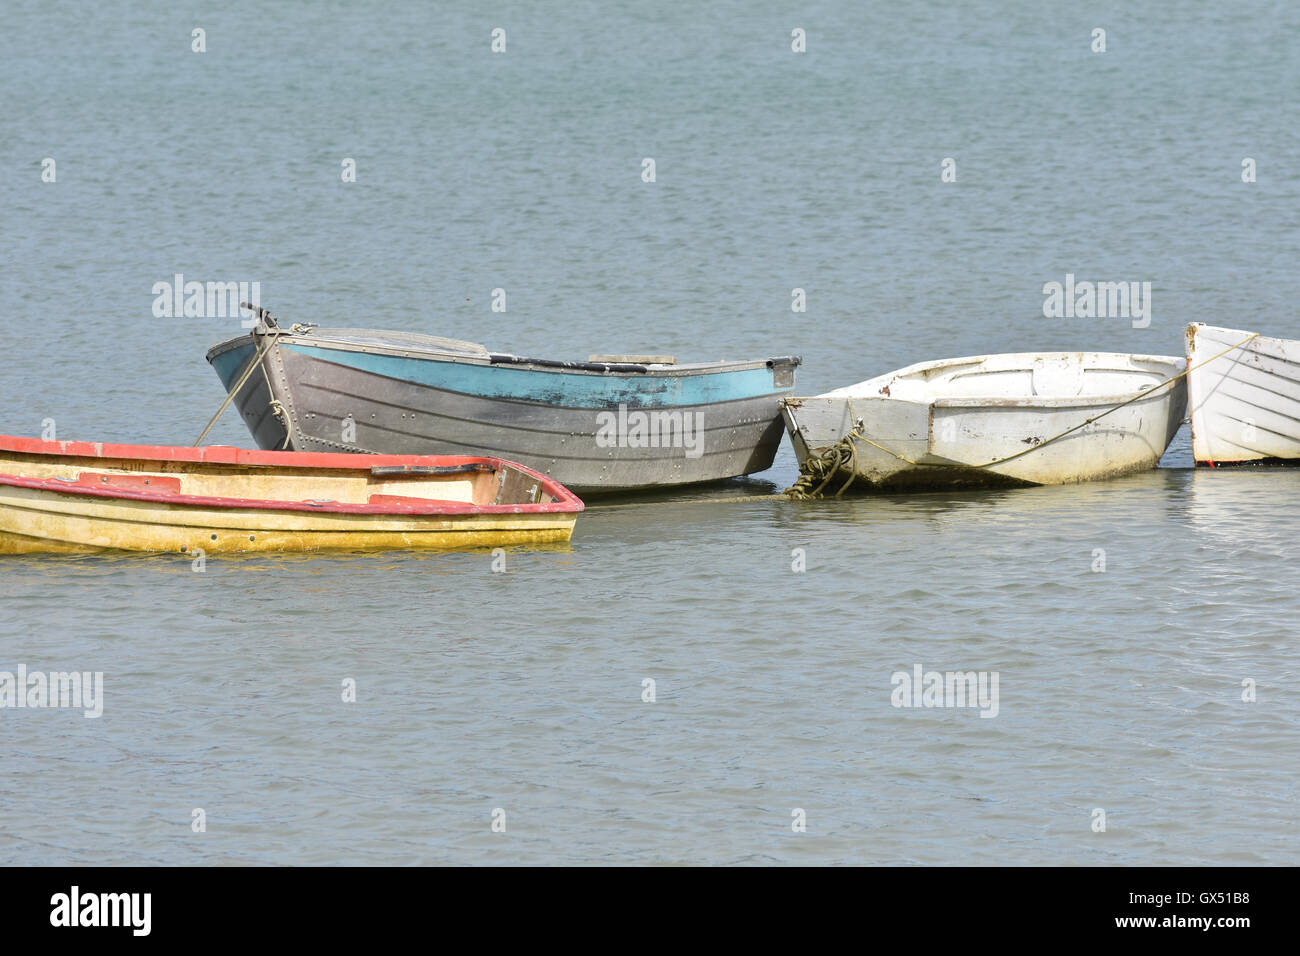 Small worn out dinghy boats - Stock Image